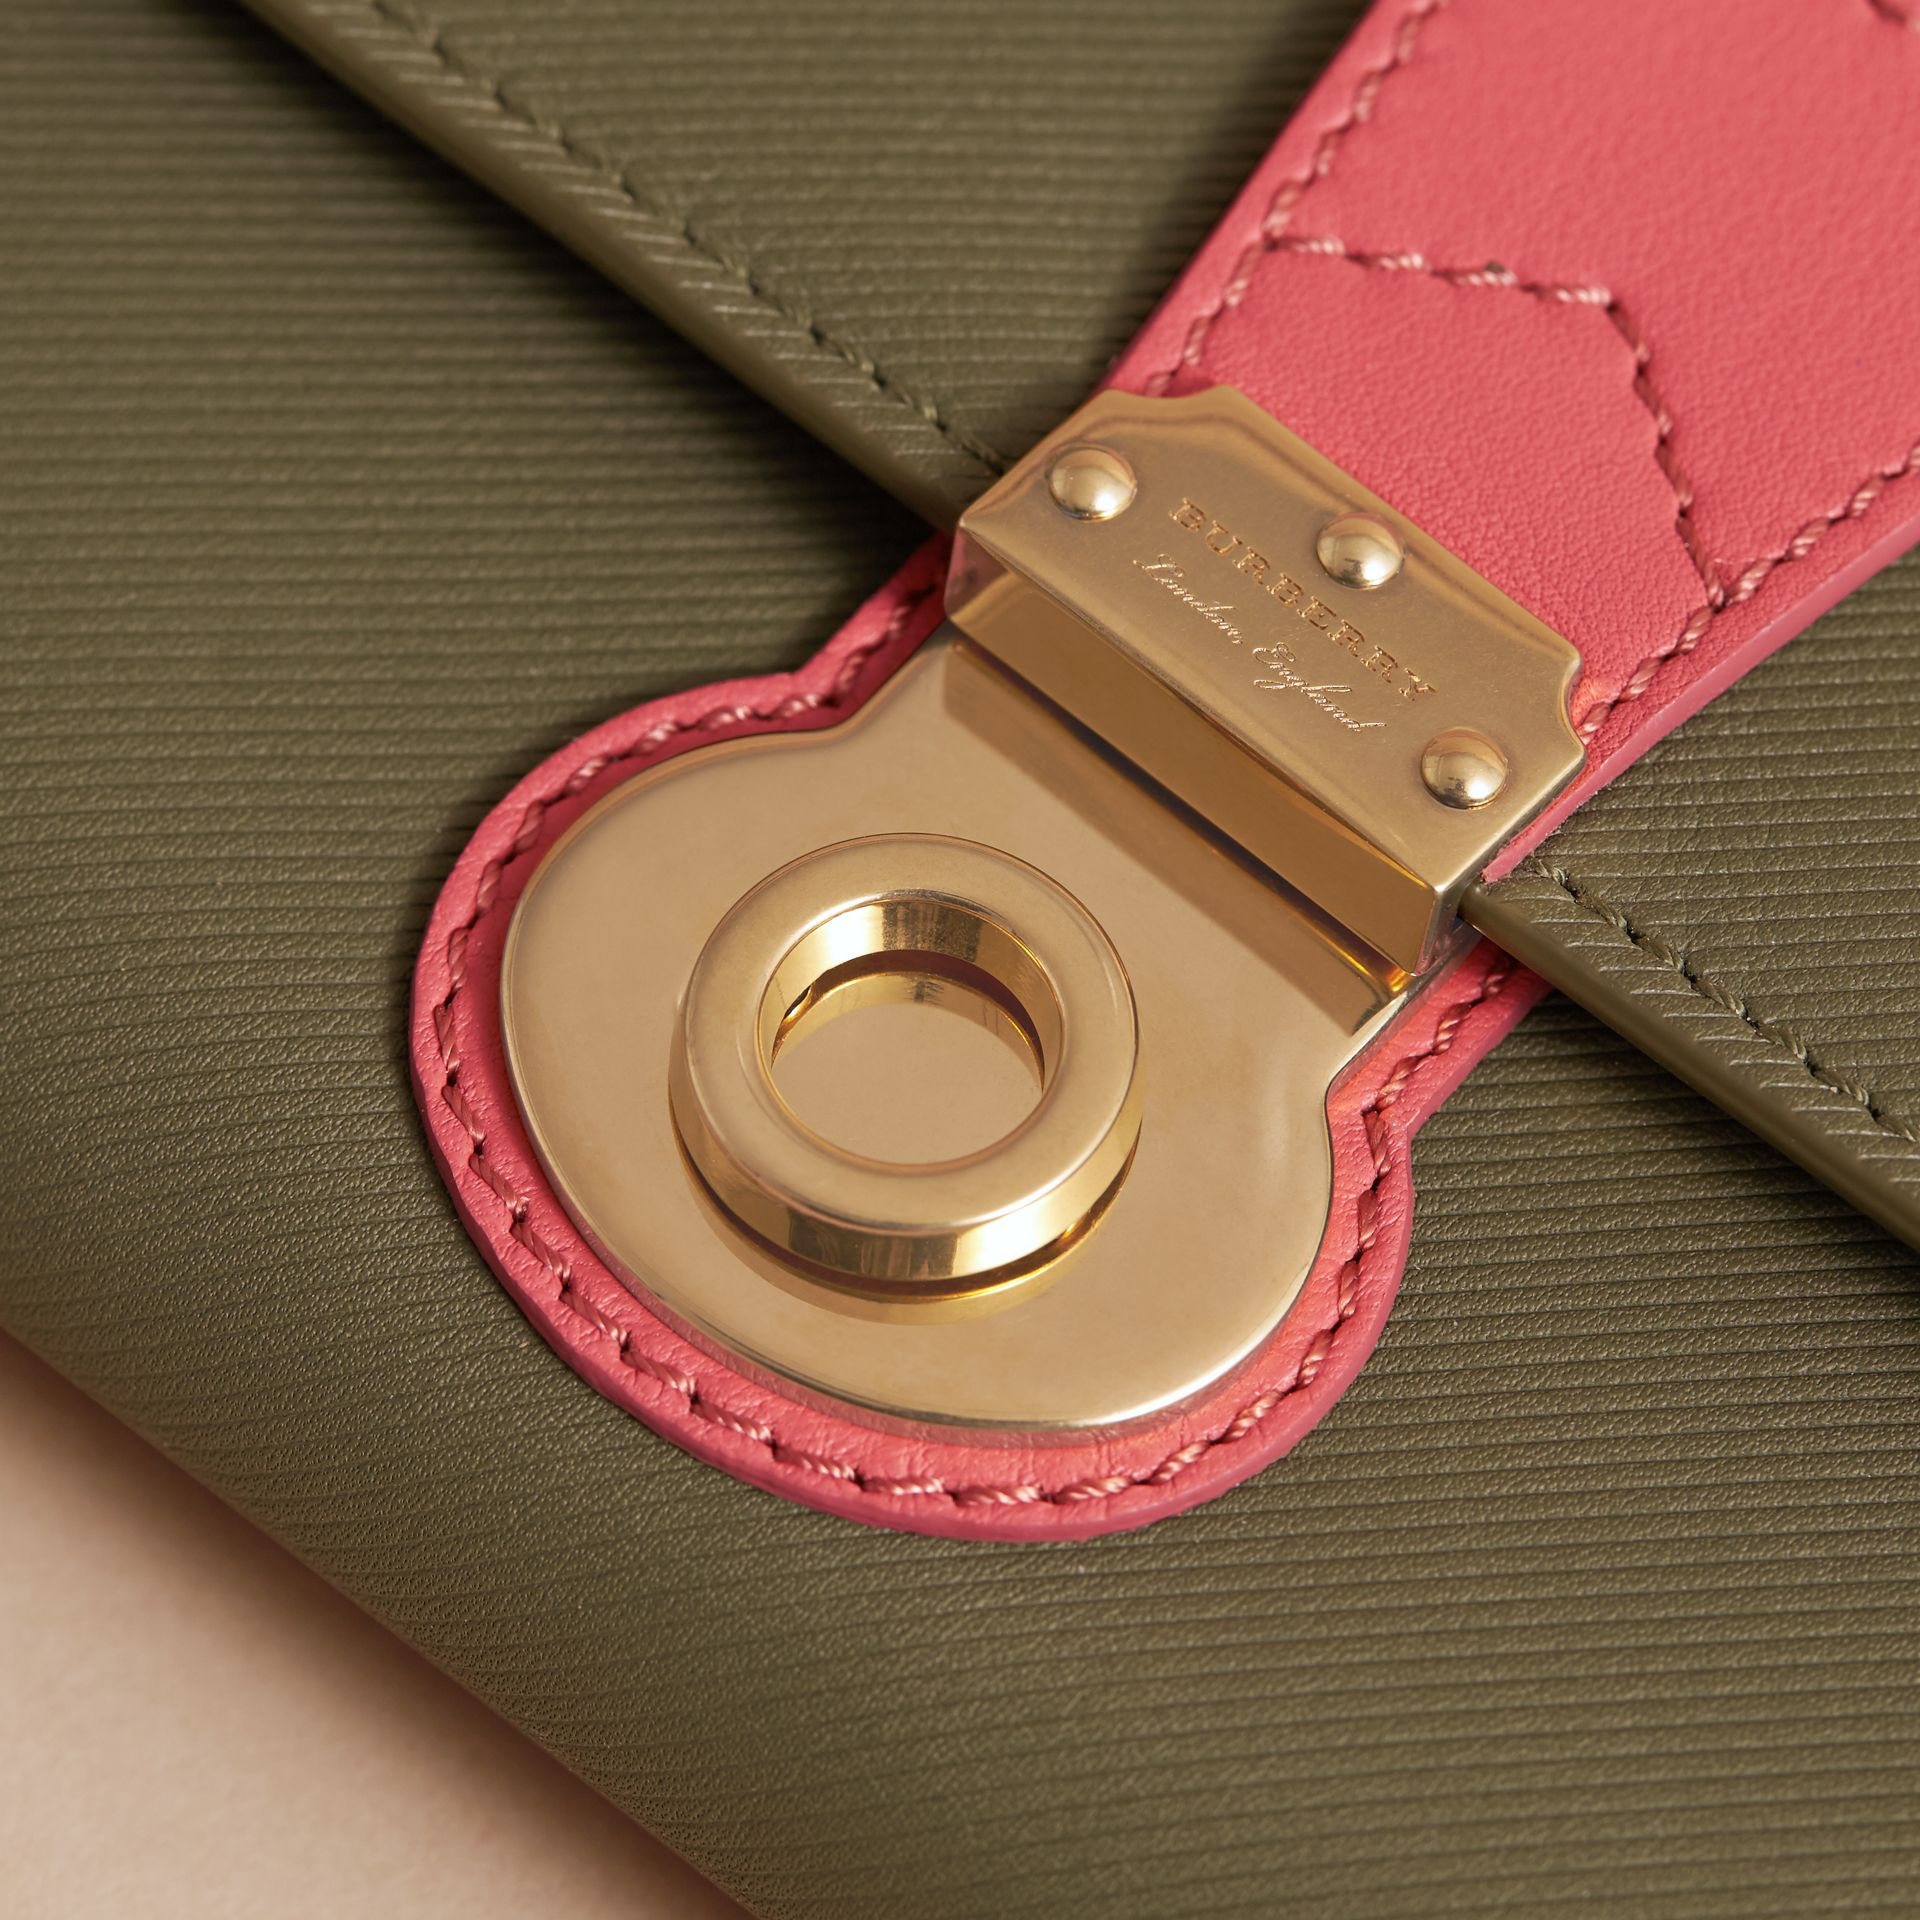 Two-tone Trench Leather Continental Wallet in Moss Green/ Blossom Pink - Women | Burberry - gallery image 2